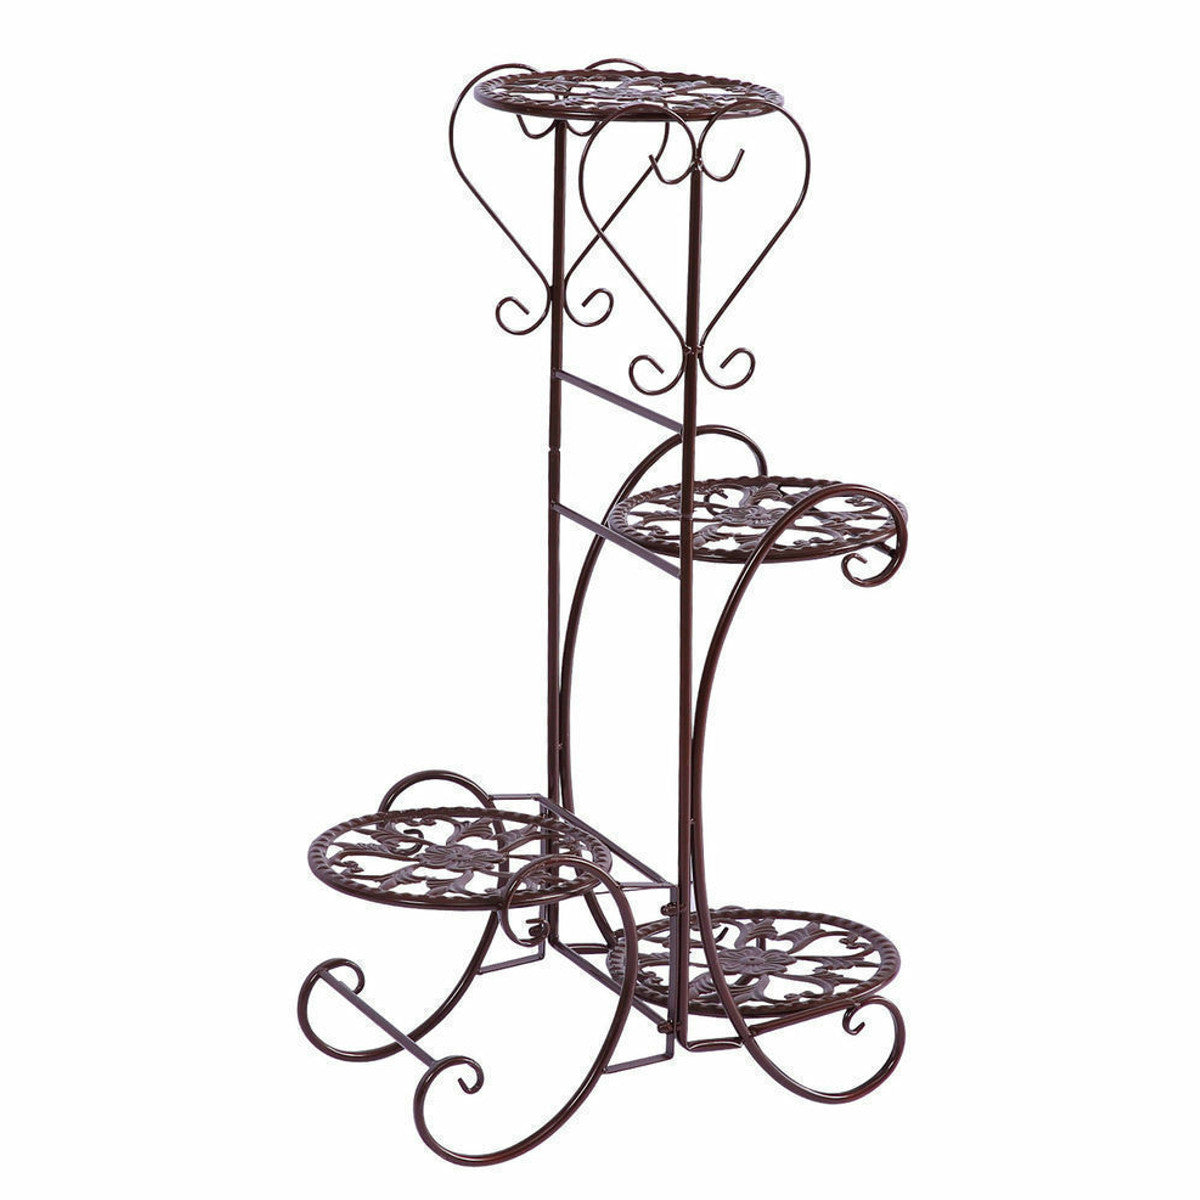 4 Tier Metal Shelves Flower Pot Plant Stand Display Indoor Outdoor Garden Patio